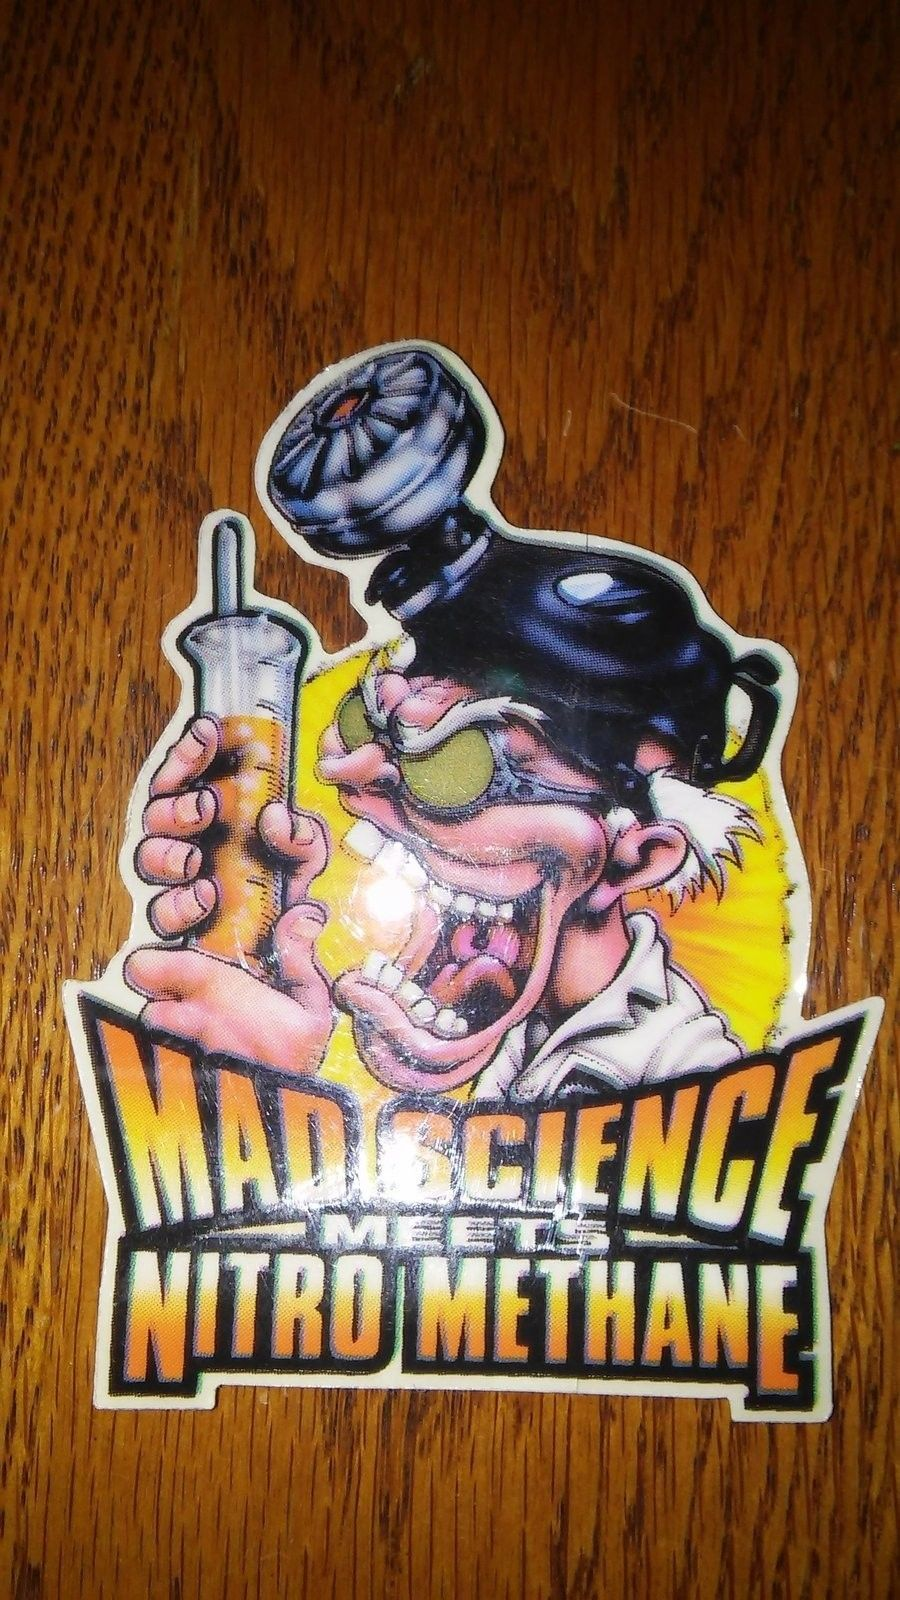 Mad science decal - 1430337679416.jpg